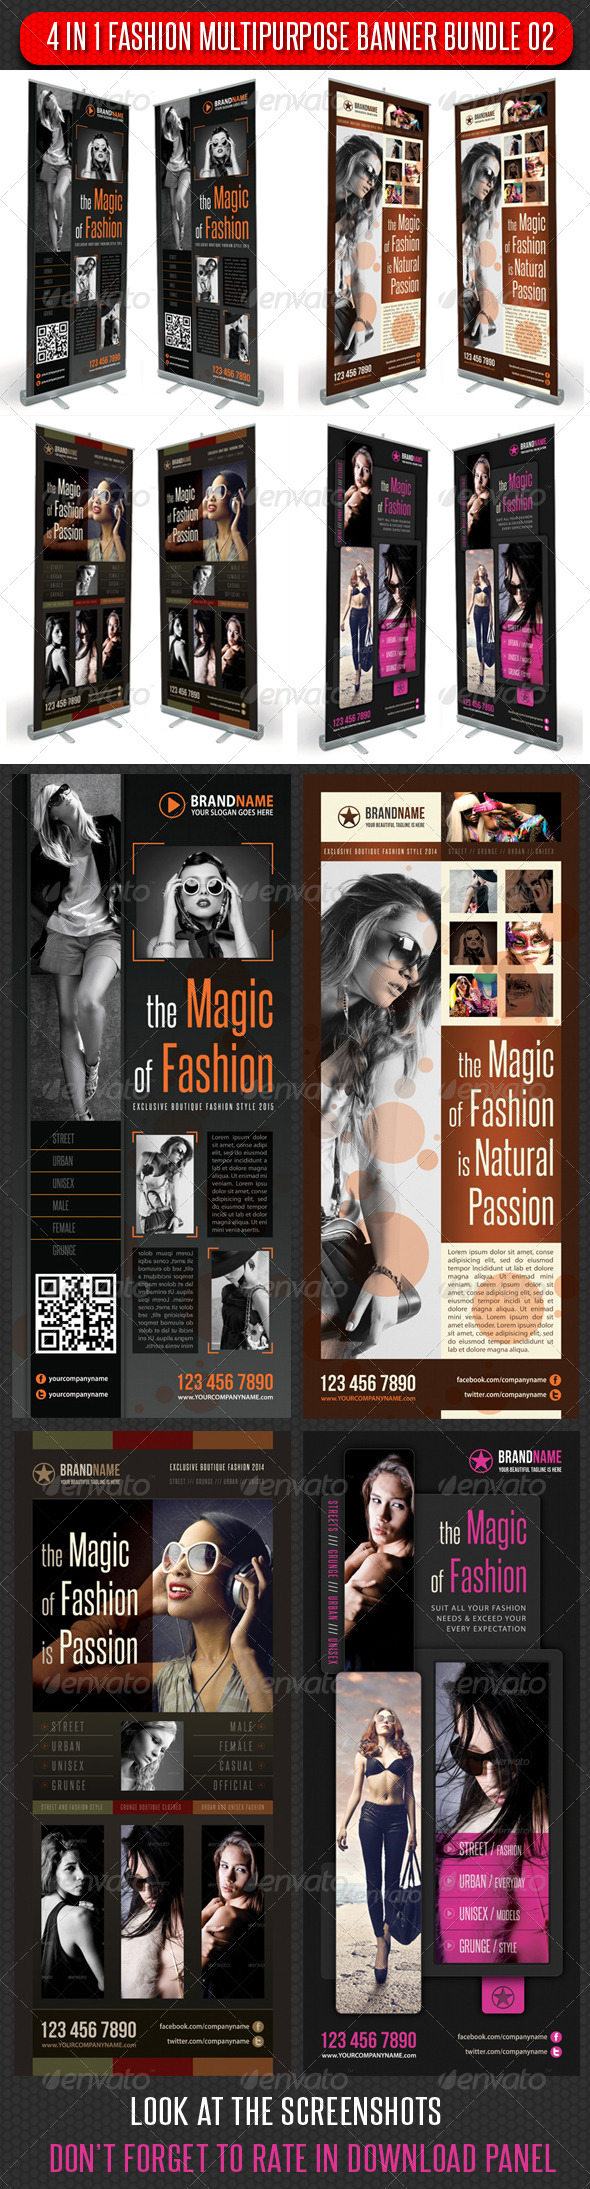 GraphicRiver 4 in 1 Fashion Multipurpose Banner Bundle 03 6018628